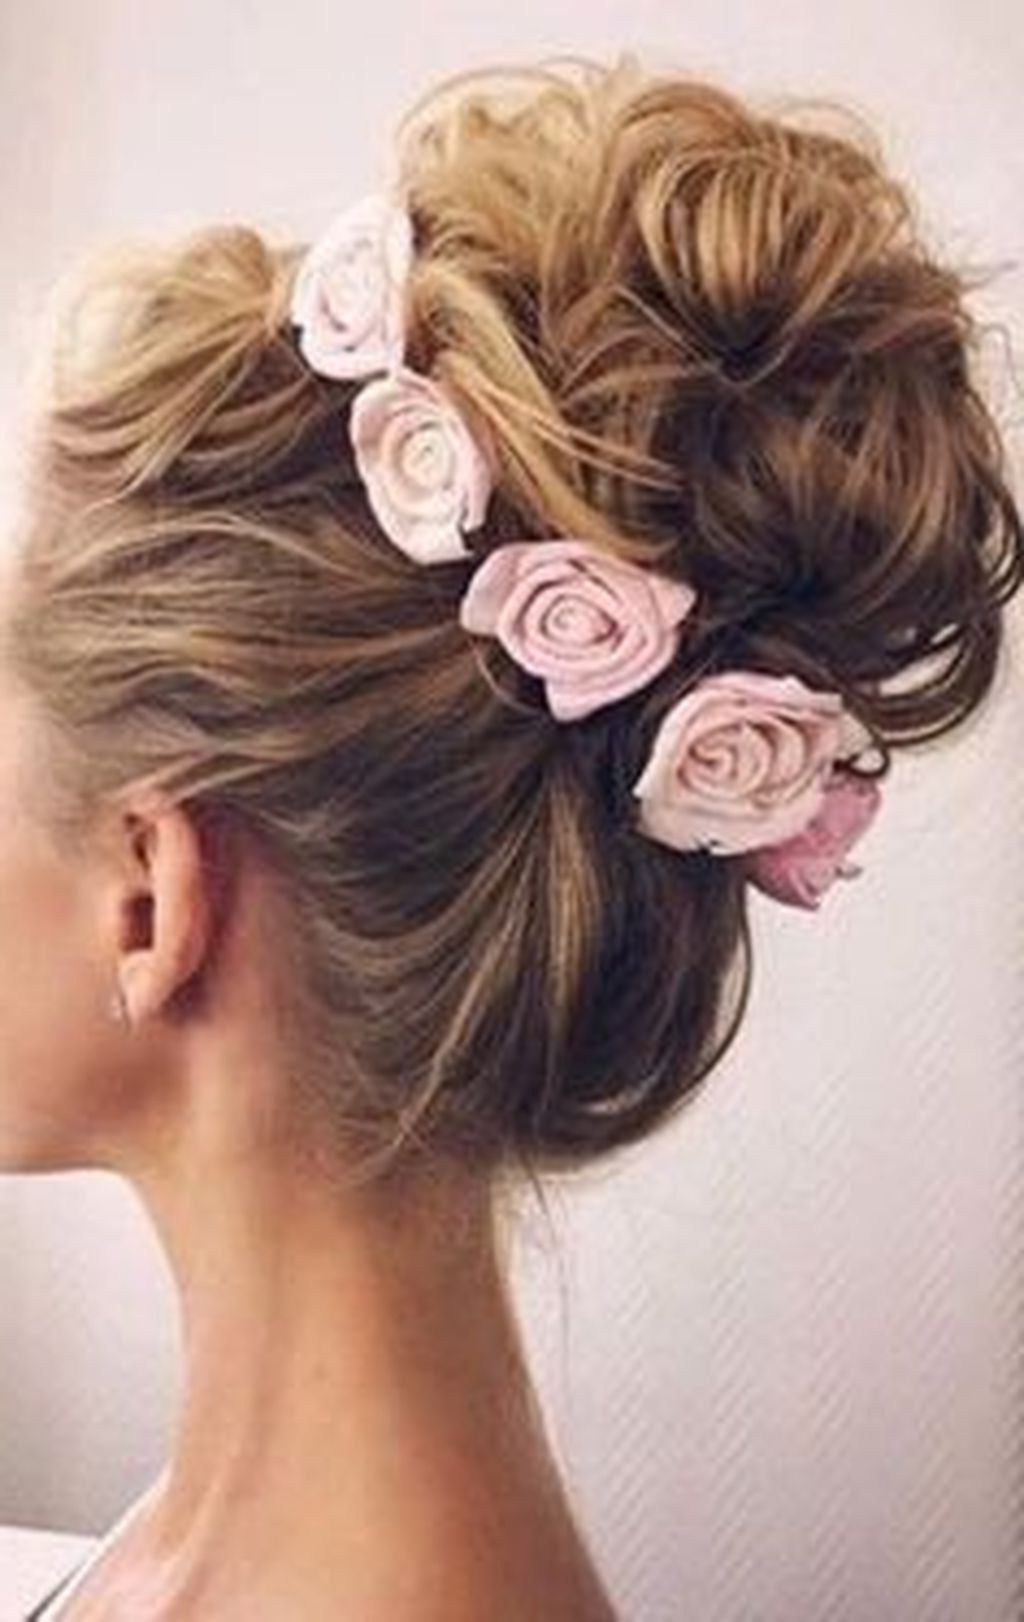 51 Amazing Wedding Hairstyles For Medium Hair Ideas To Makes You Inside Latest Brides Medium Hairstyles (Gallery 5 of 20)